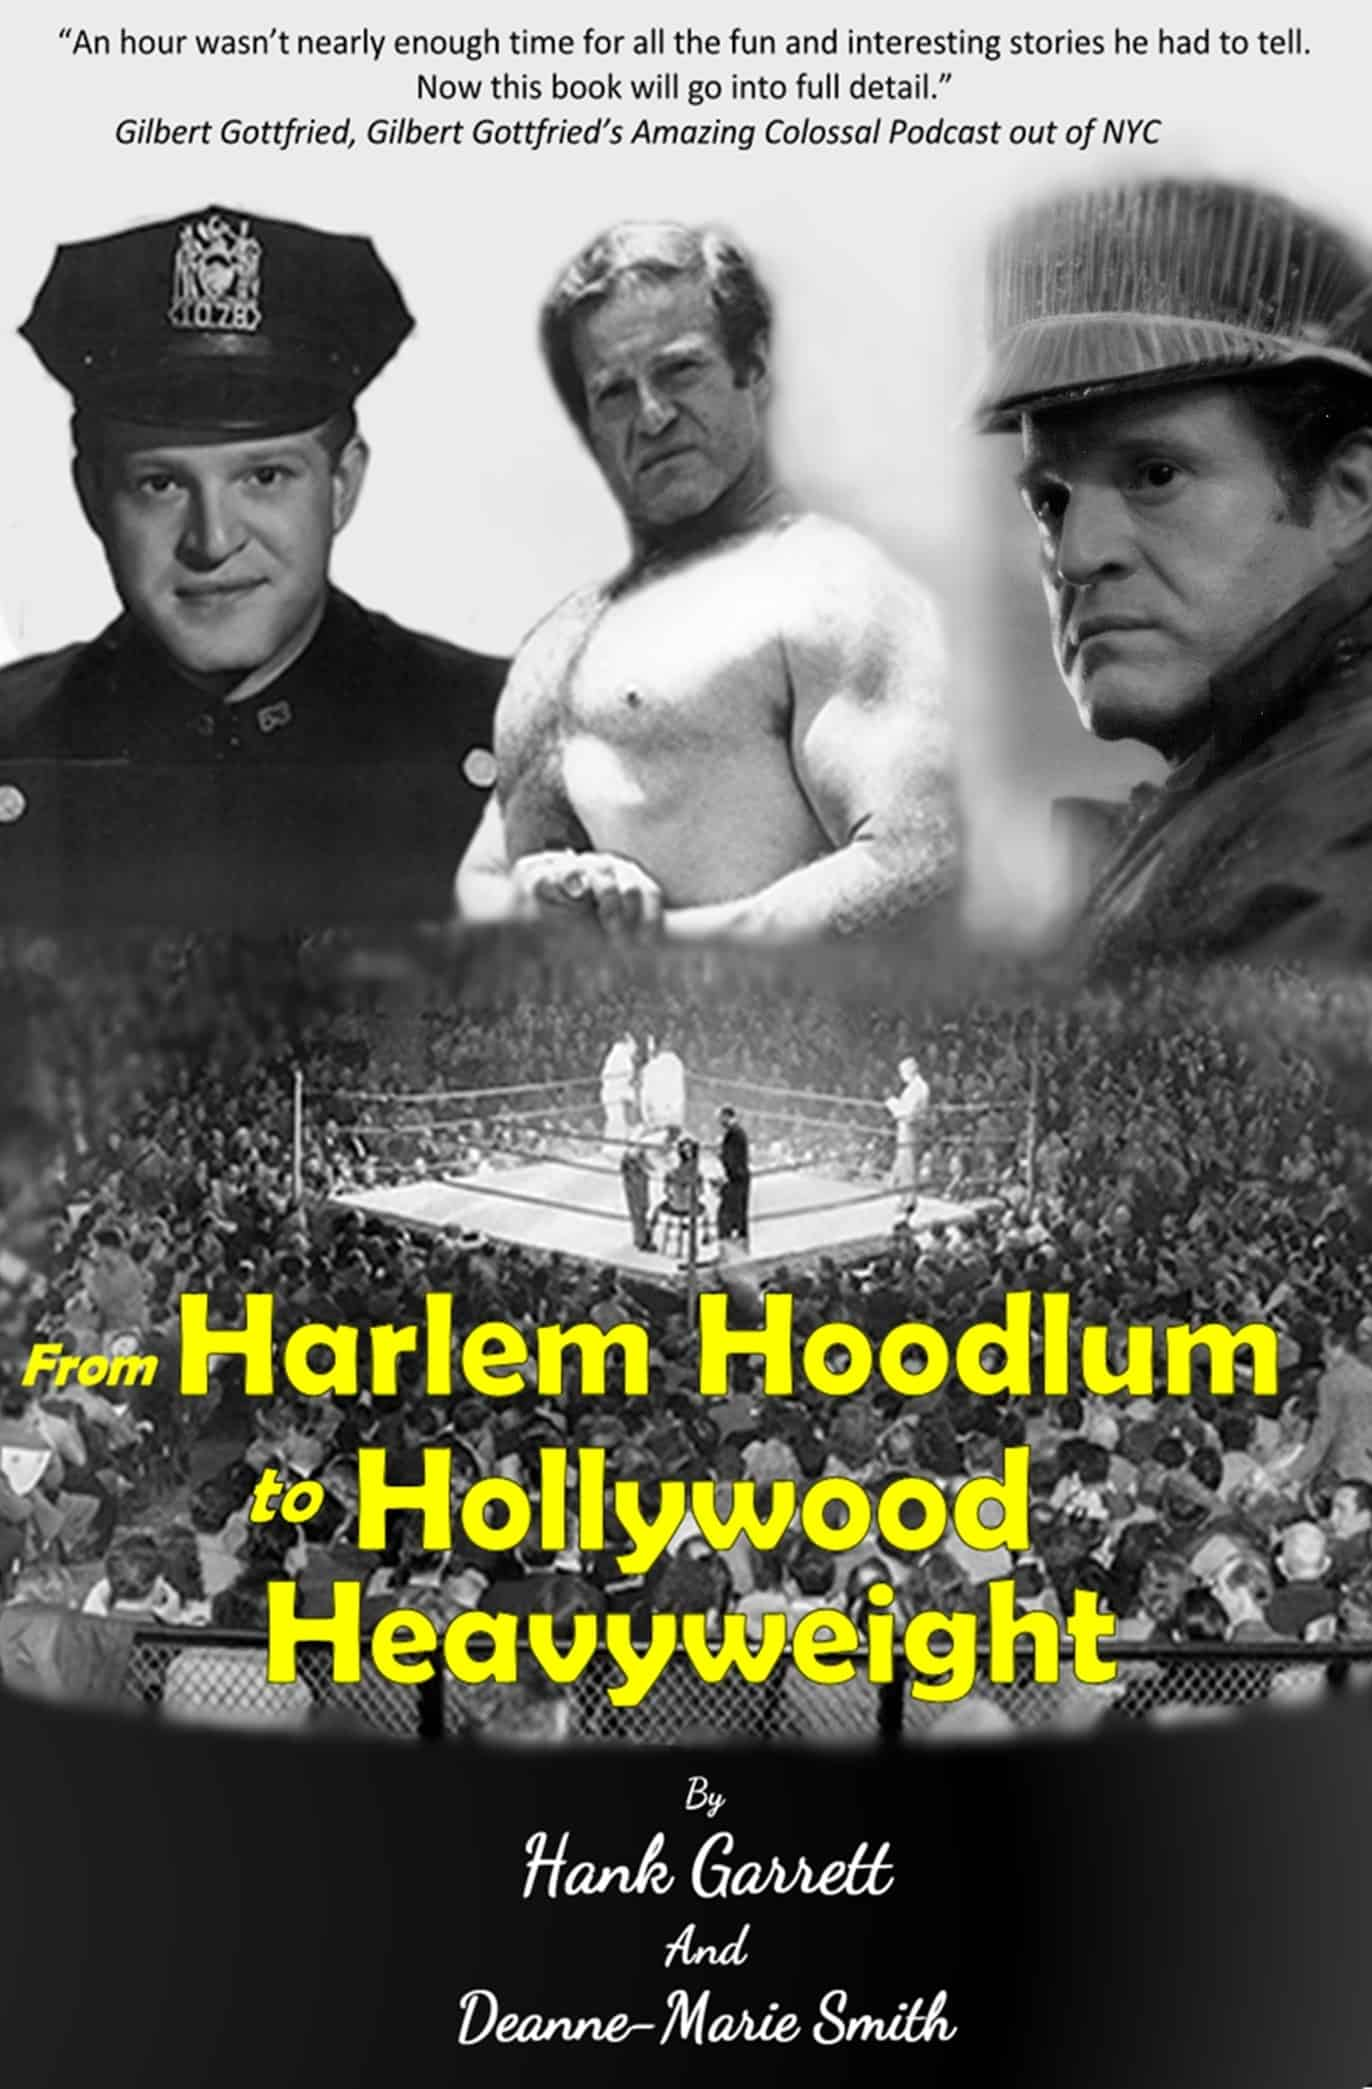 Cover of From Harlem Hoodlum to Hollywood Heavyweight by Hank Garrett and Deanne-Marie Smith - provided by publicist